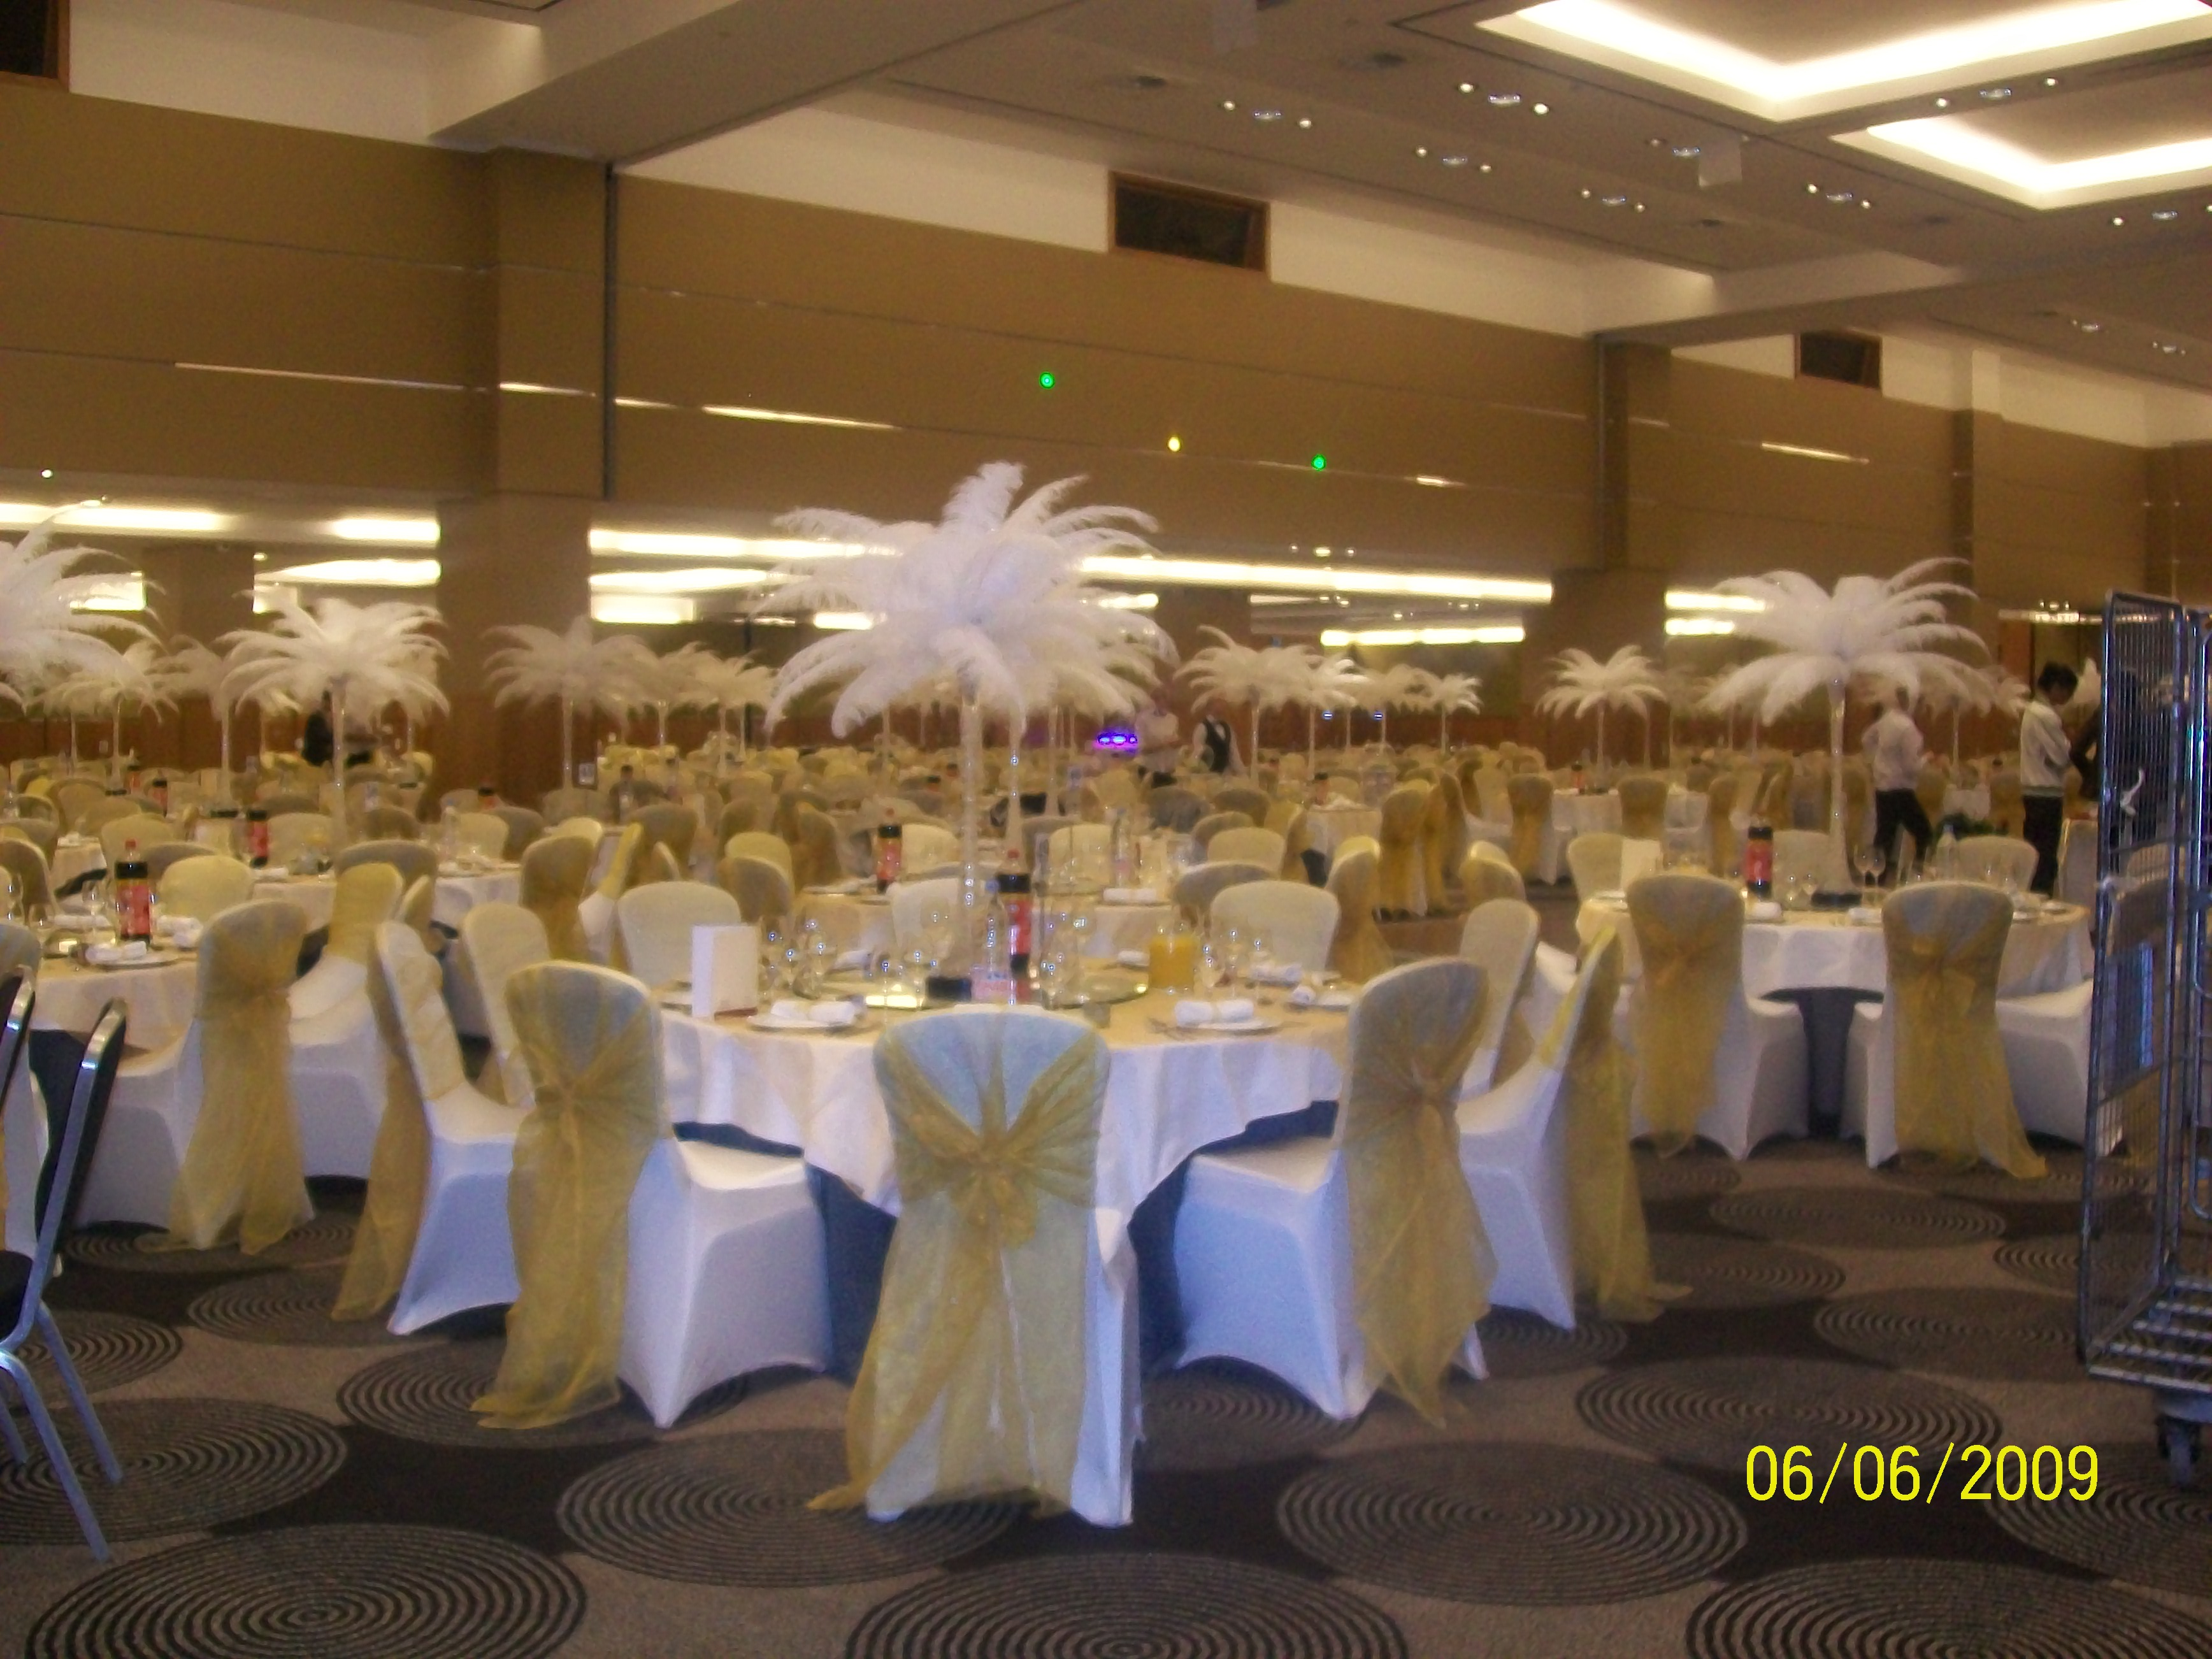 hire chair covers glasgow diy wicker cushions weddings a1balloons s blog wedding cover uk